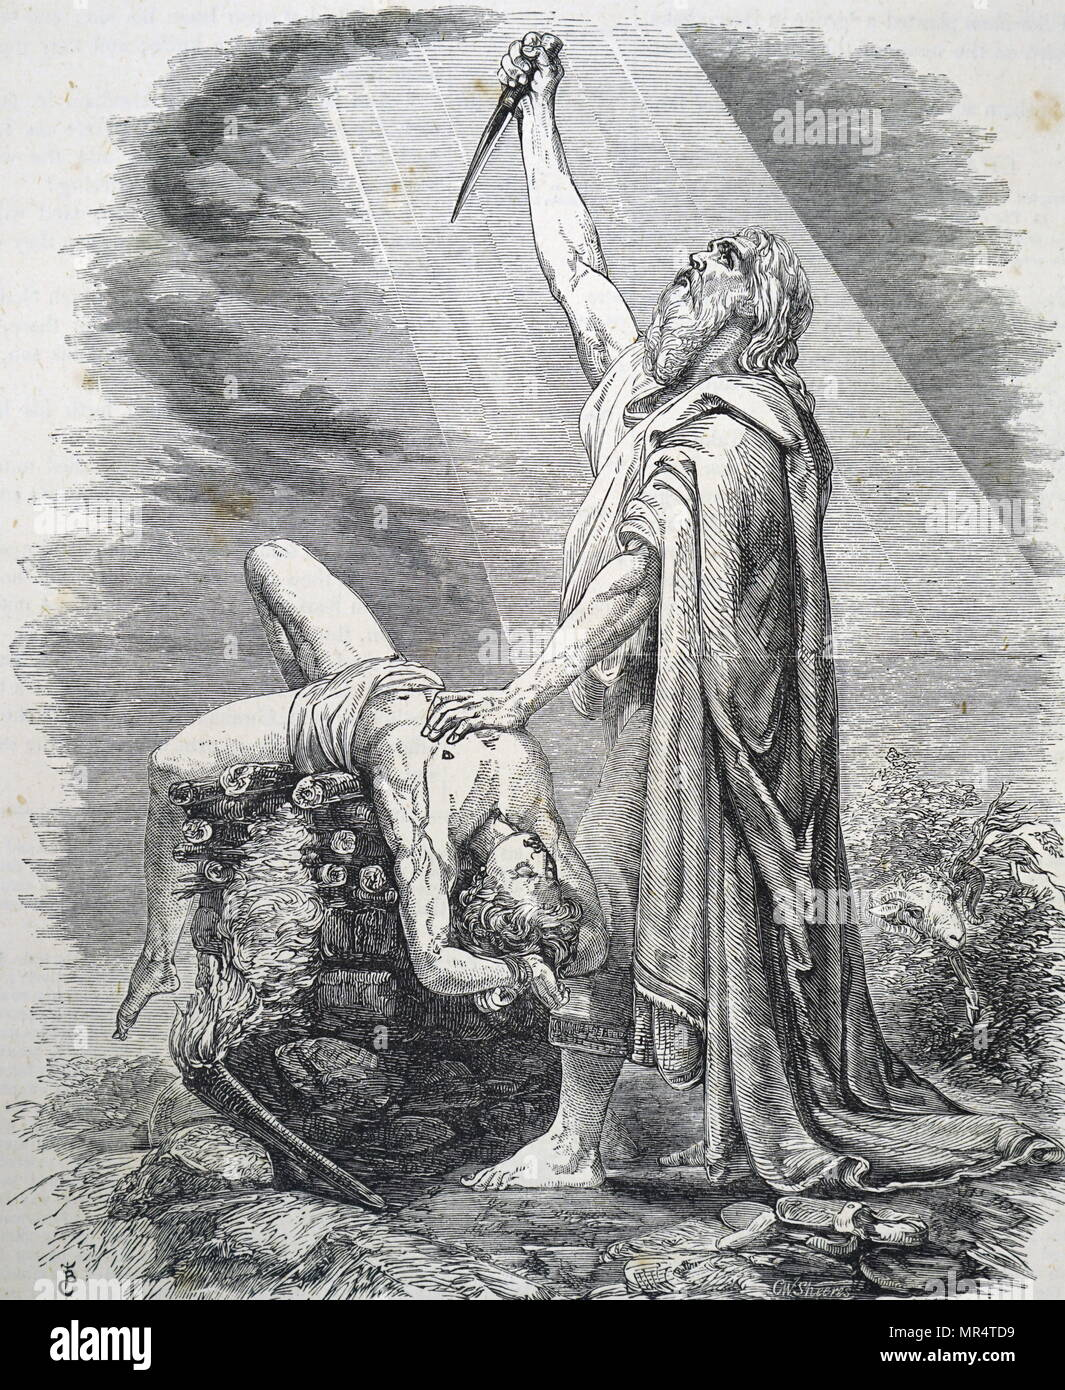 Engraving depicting Abraham offering his son Isaac as a Sacrifice to God. Because of his obedience, God released him from his vow, and placed a ram nearby which Abraham could sacrifice in place of Isaac. Dated 17th century - Stock Image